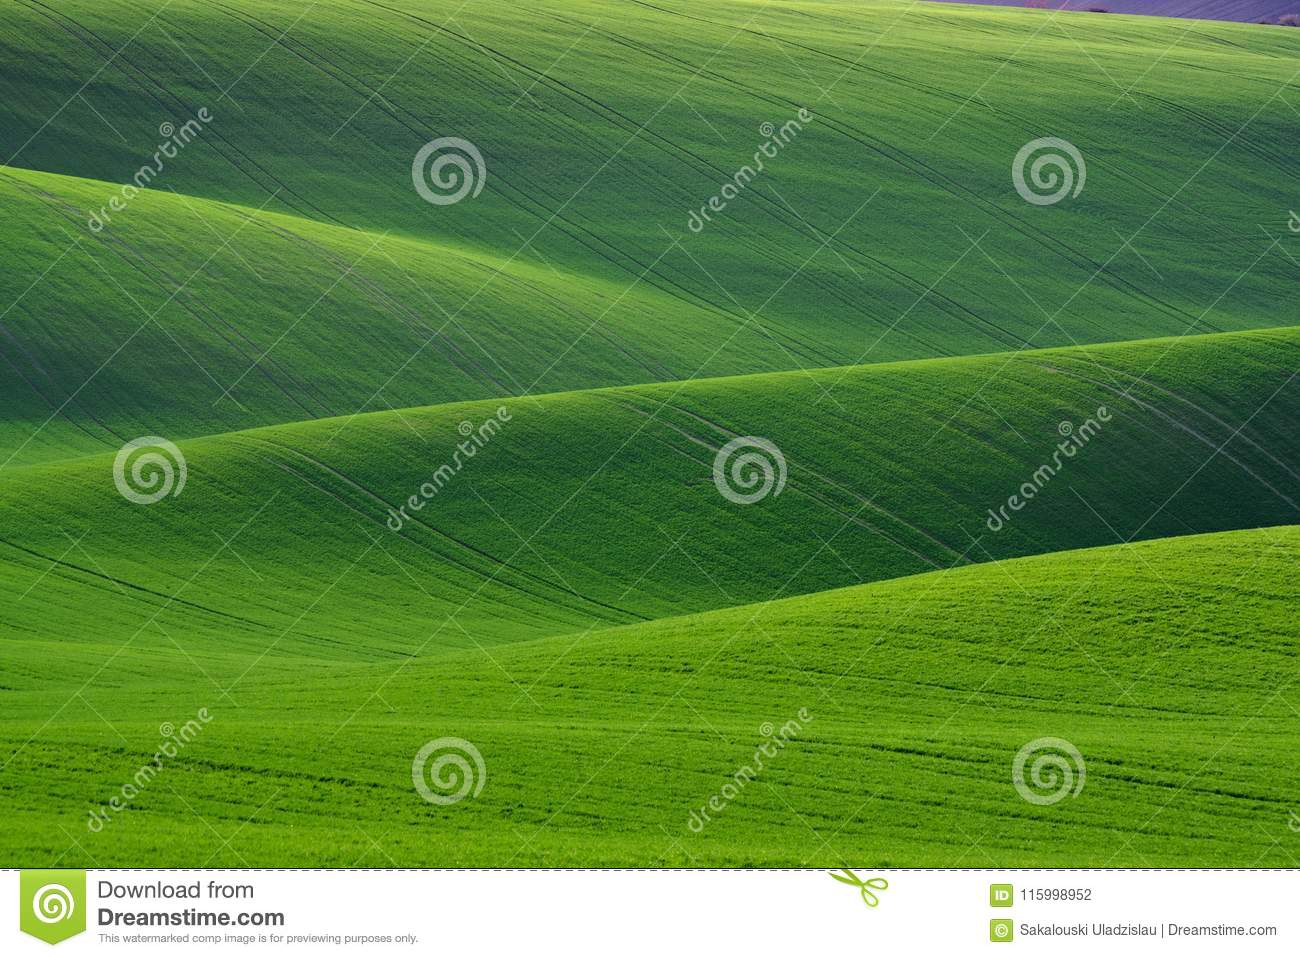 Great Natural Green Background. Spring Rolling Green Hills With Fields Of Wheat. Amazing Fairy Minimalistic Spring Landscape With